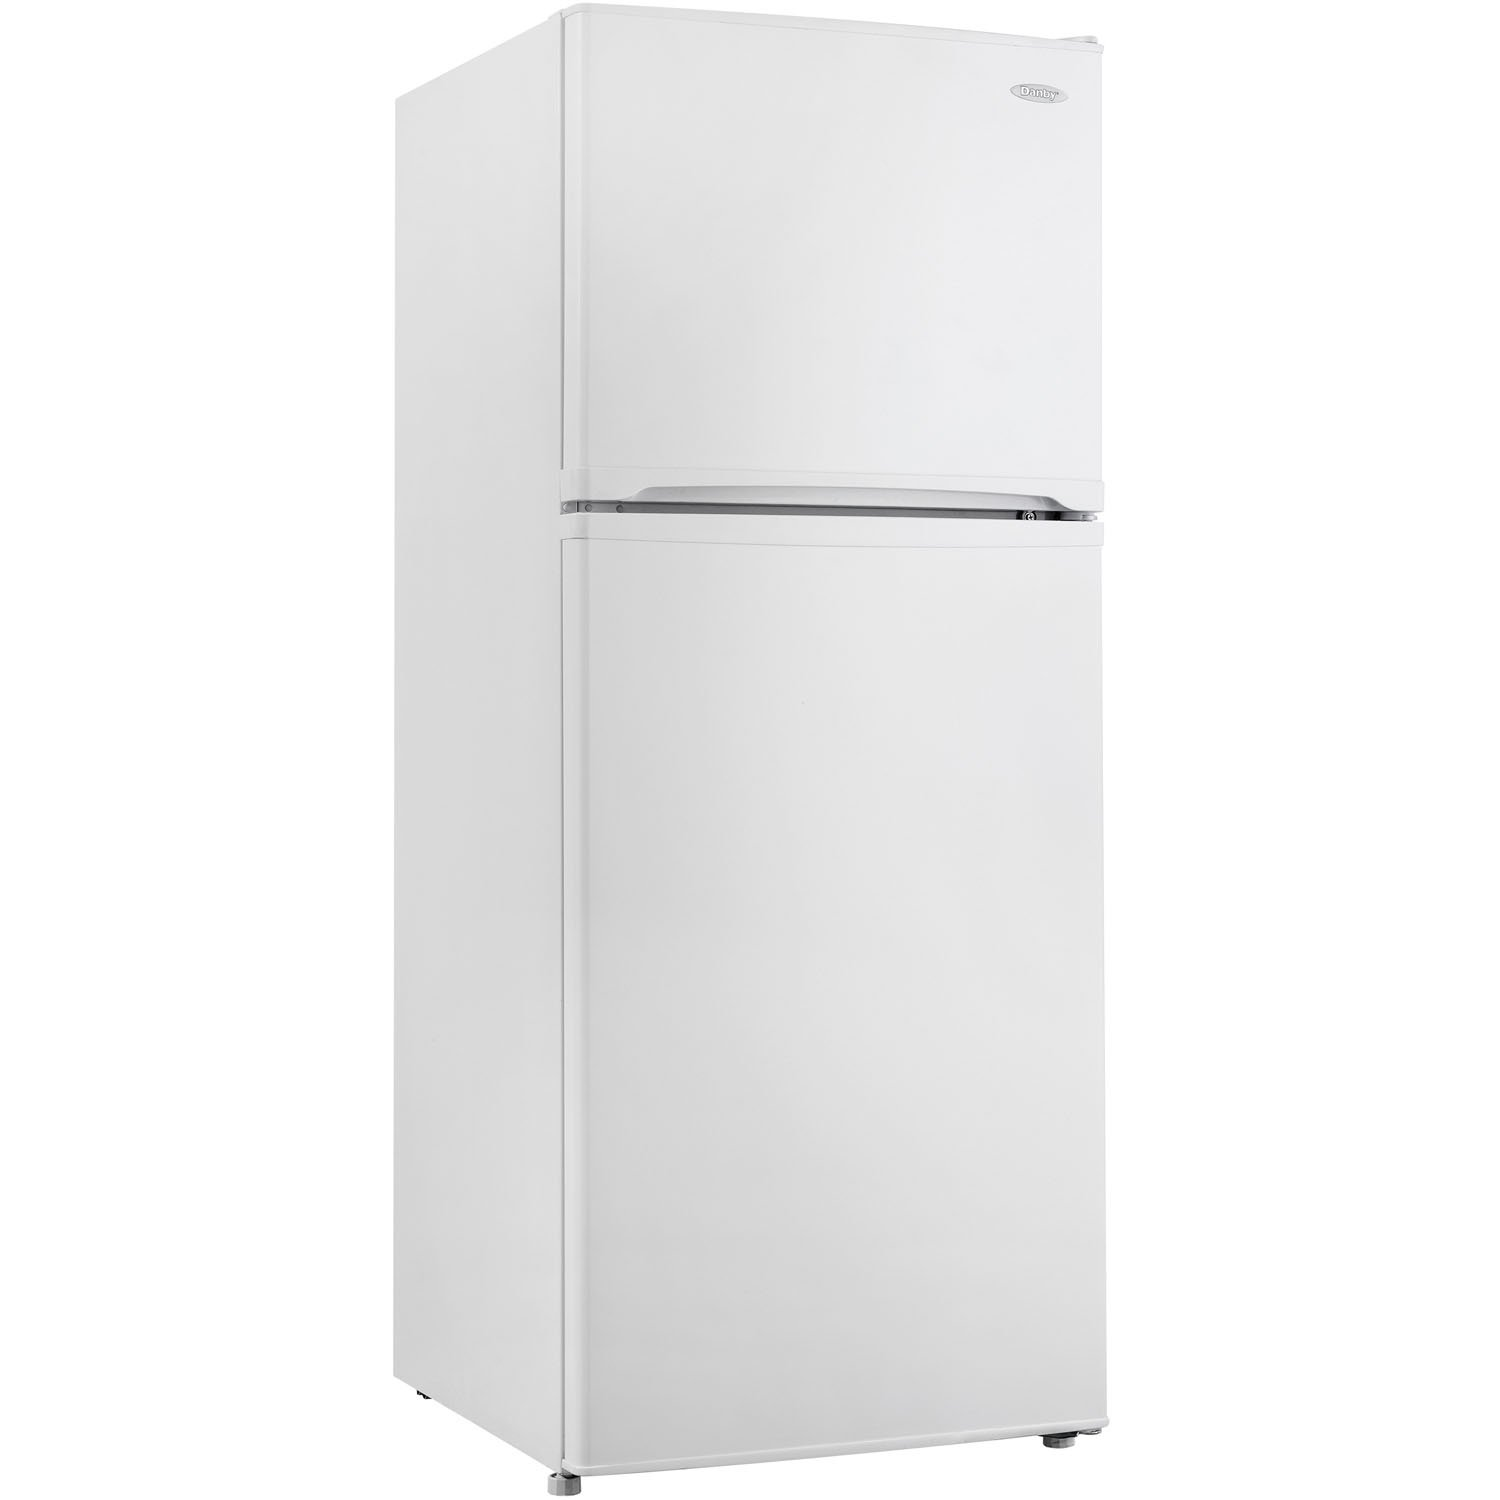 Danby DFF100C1WDB Frost-Free Refrigerator with Top-Mount Freezer, 9.9 Cubic Feet, White